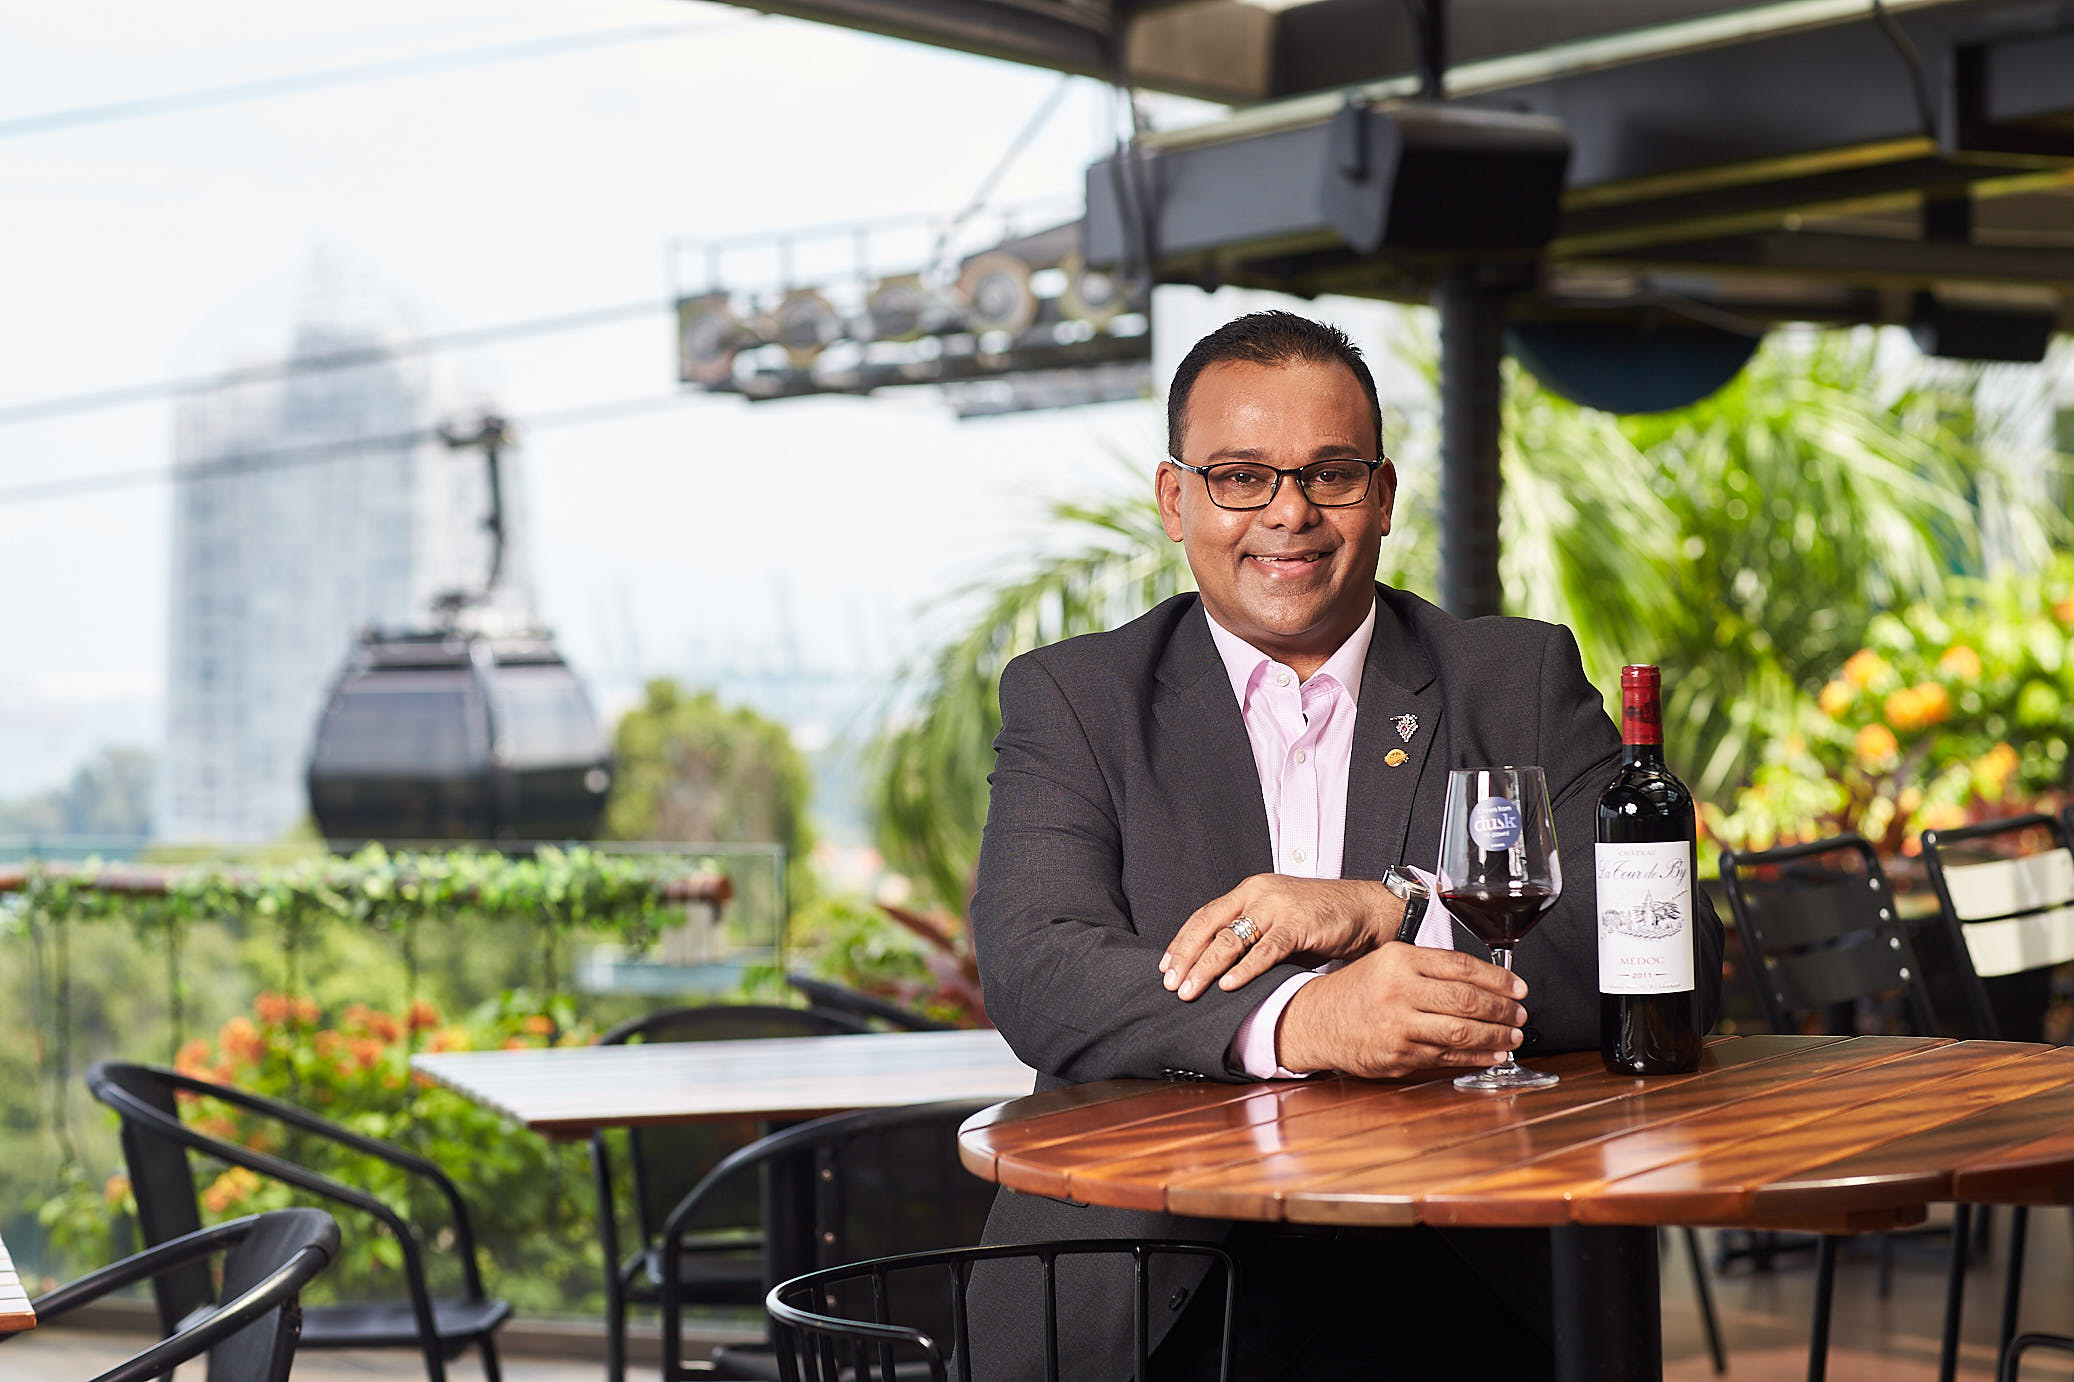 Mohamed Yazid - Recently awarded runner-up for Food & Beverage Manager of the Year at World Gourmet Summit 2019, Mohamed is an accomplished wine expert as evidenced with his nine prestigious local and international accolades.